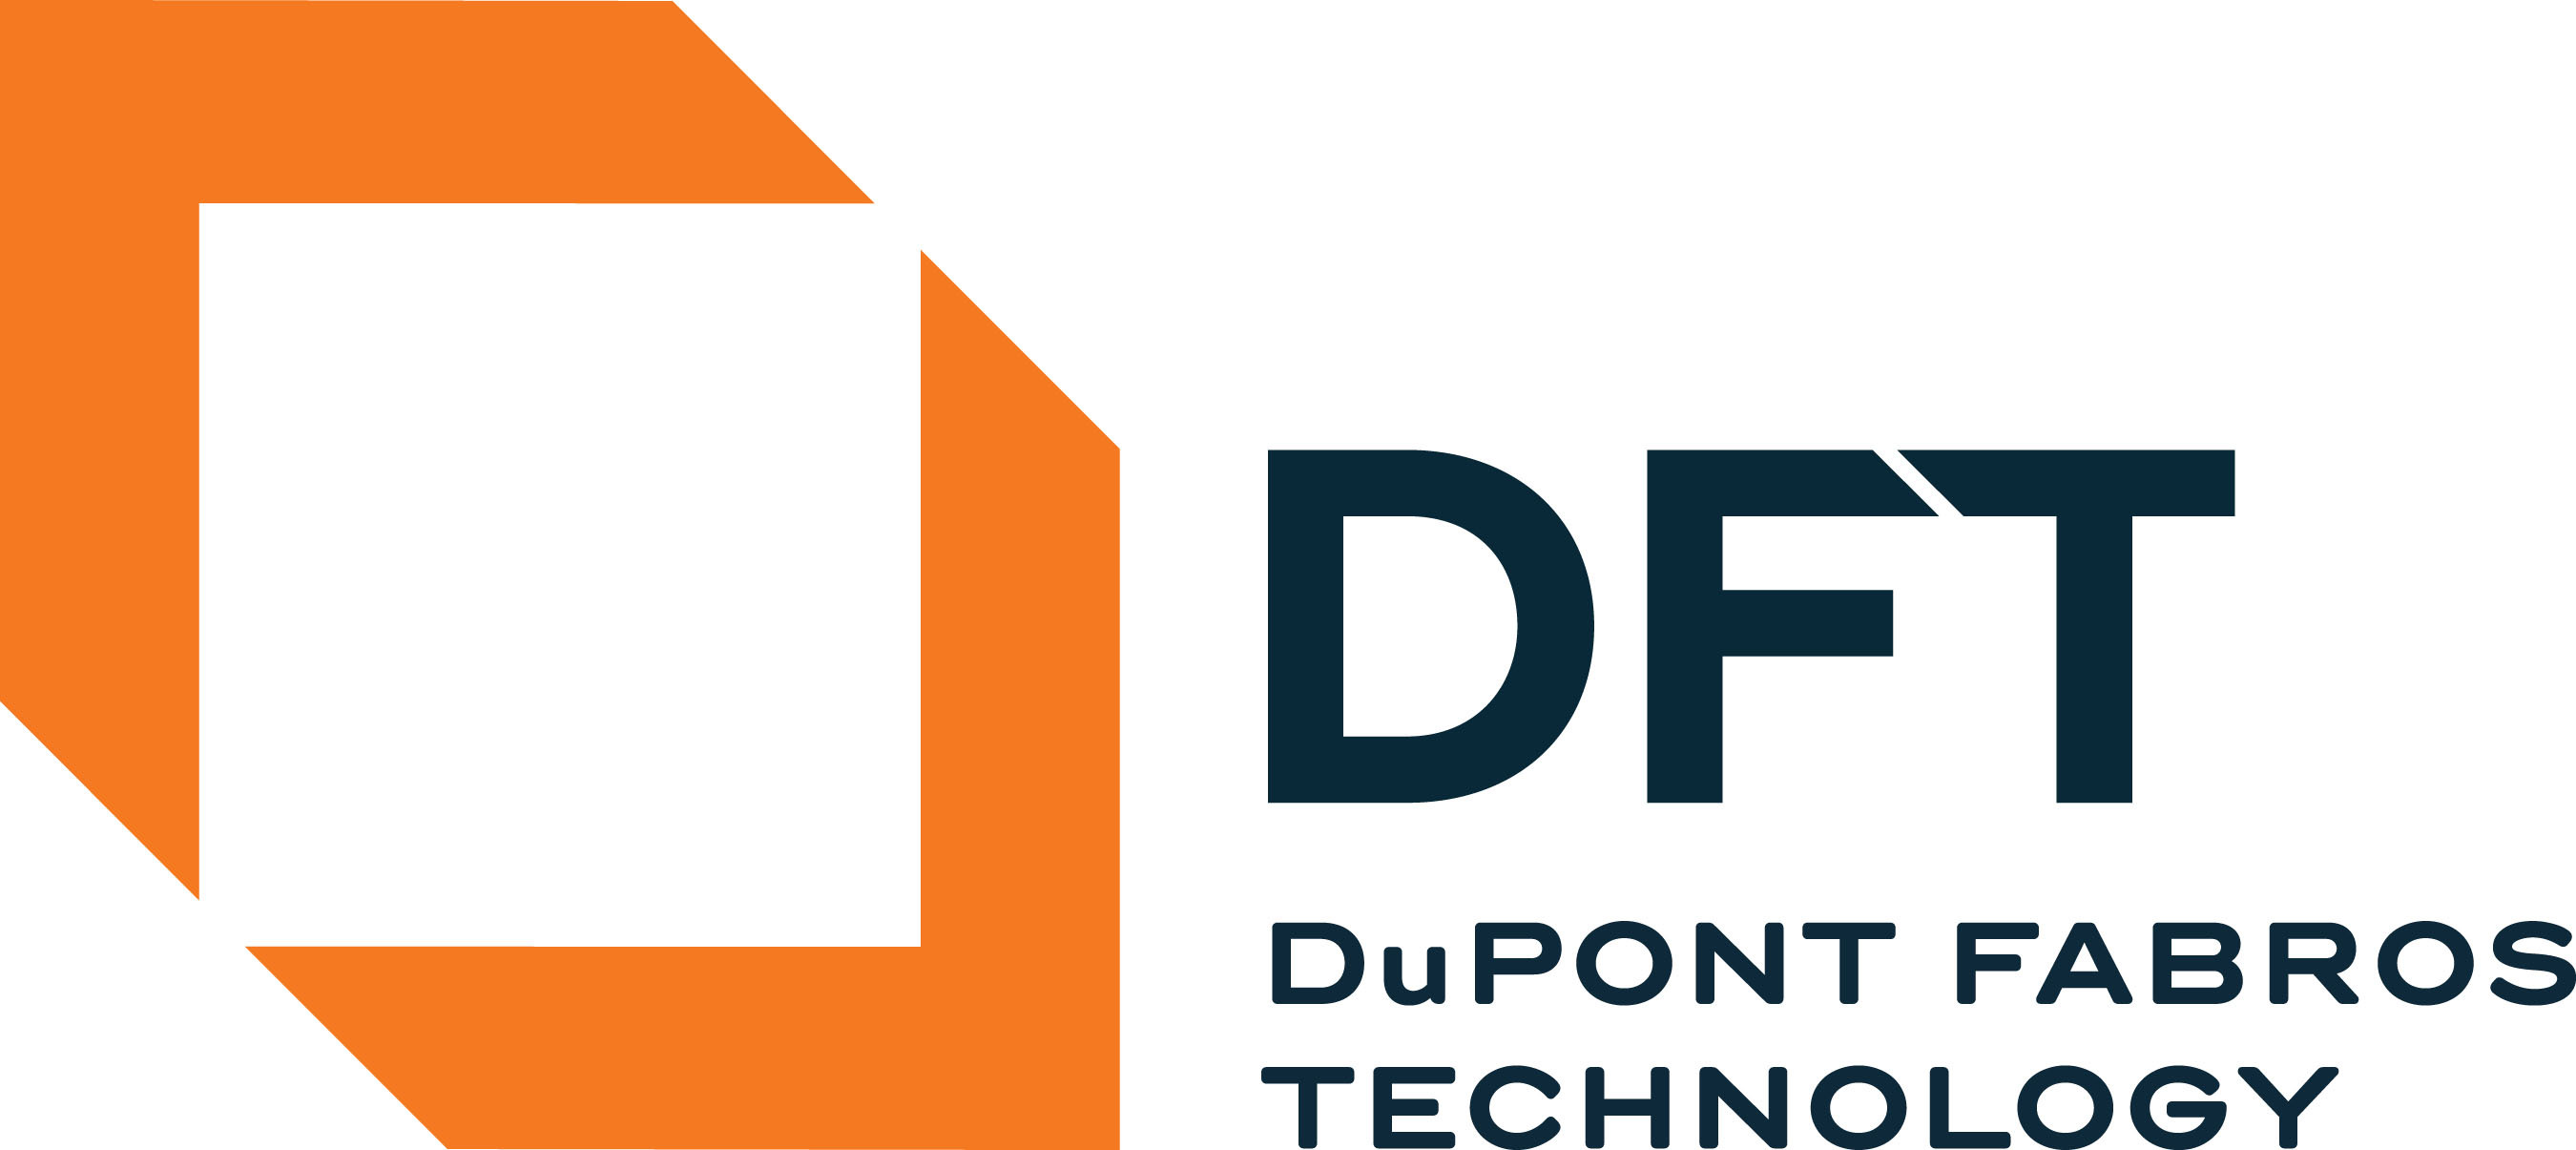 DuPont Fabros Technology, Inc. (NYSE: DFT) is a real estate investment trust (REIT) and leading owner, developer, operator and manager of wholesale data centers. The Company's data centers are highly specialized, secure, network-neutral facilities used primarily by national and international Internet and enterprise companies to house, power and cool the computer servers that support many of their most critical business processes. DuPont Fabros Technology, Inc. is headquartered in Washington, DC. For more information, please visit  www.dft.com . (PRNewsFoto/Dupont Fabros Technology, Inc.) (PRNewsFoto/)